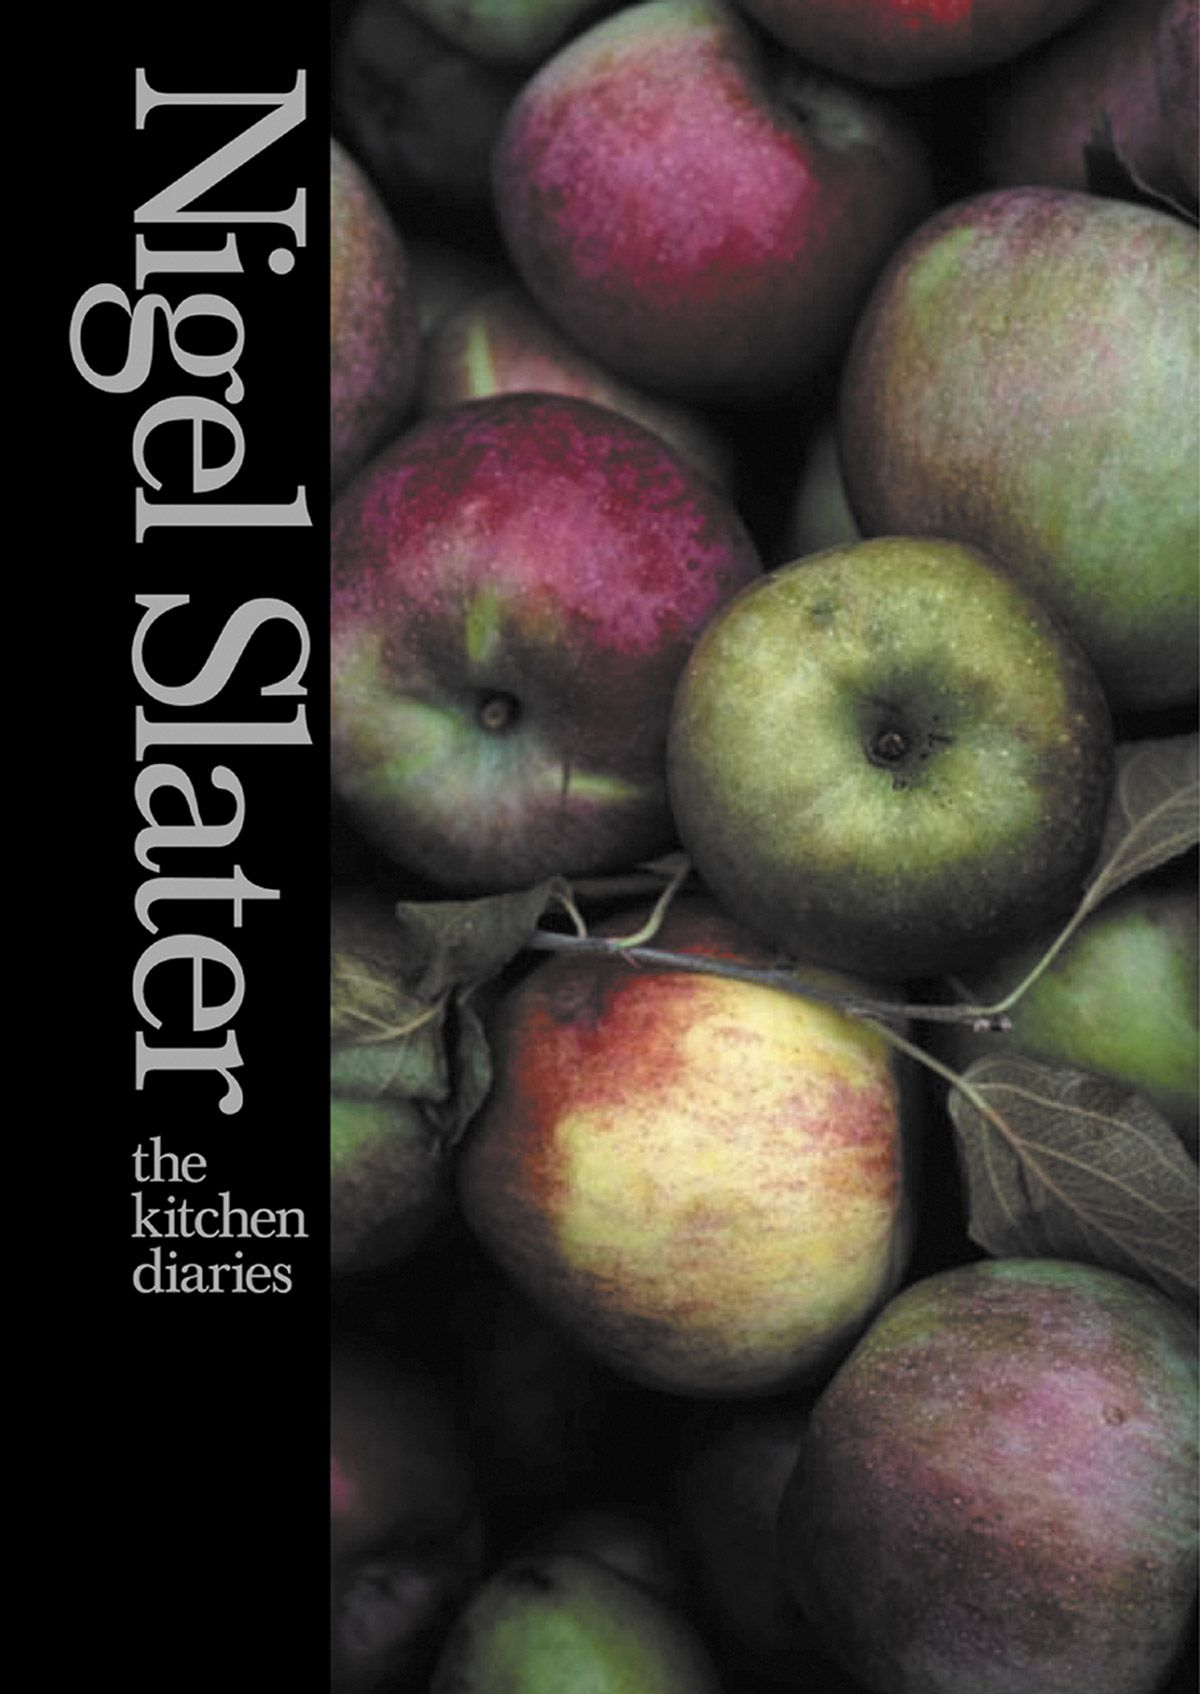 The Kitchen Diaries by Nigel Slater, one of the best cookbooks chosen by Eater writers